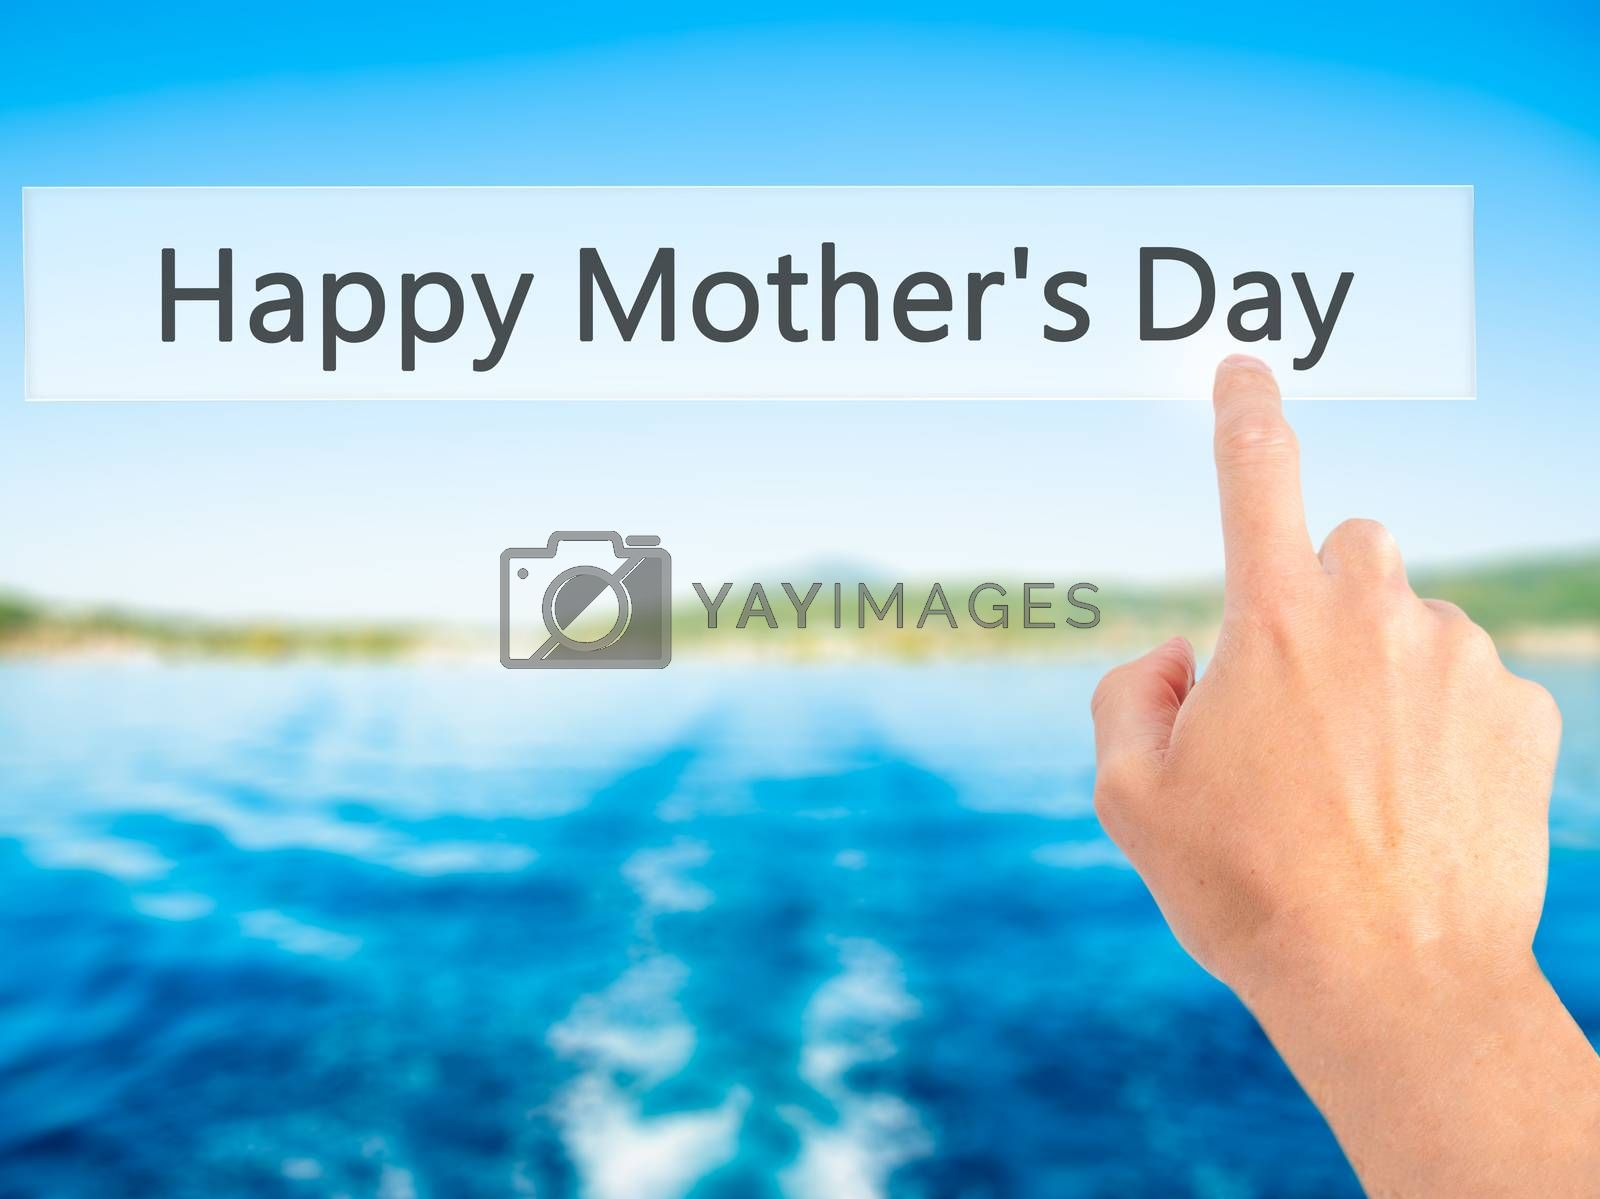 Happy Mother's Day - Hand pressing a button on blurred backgroun by netsay.net